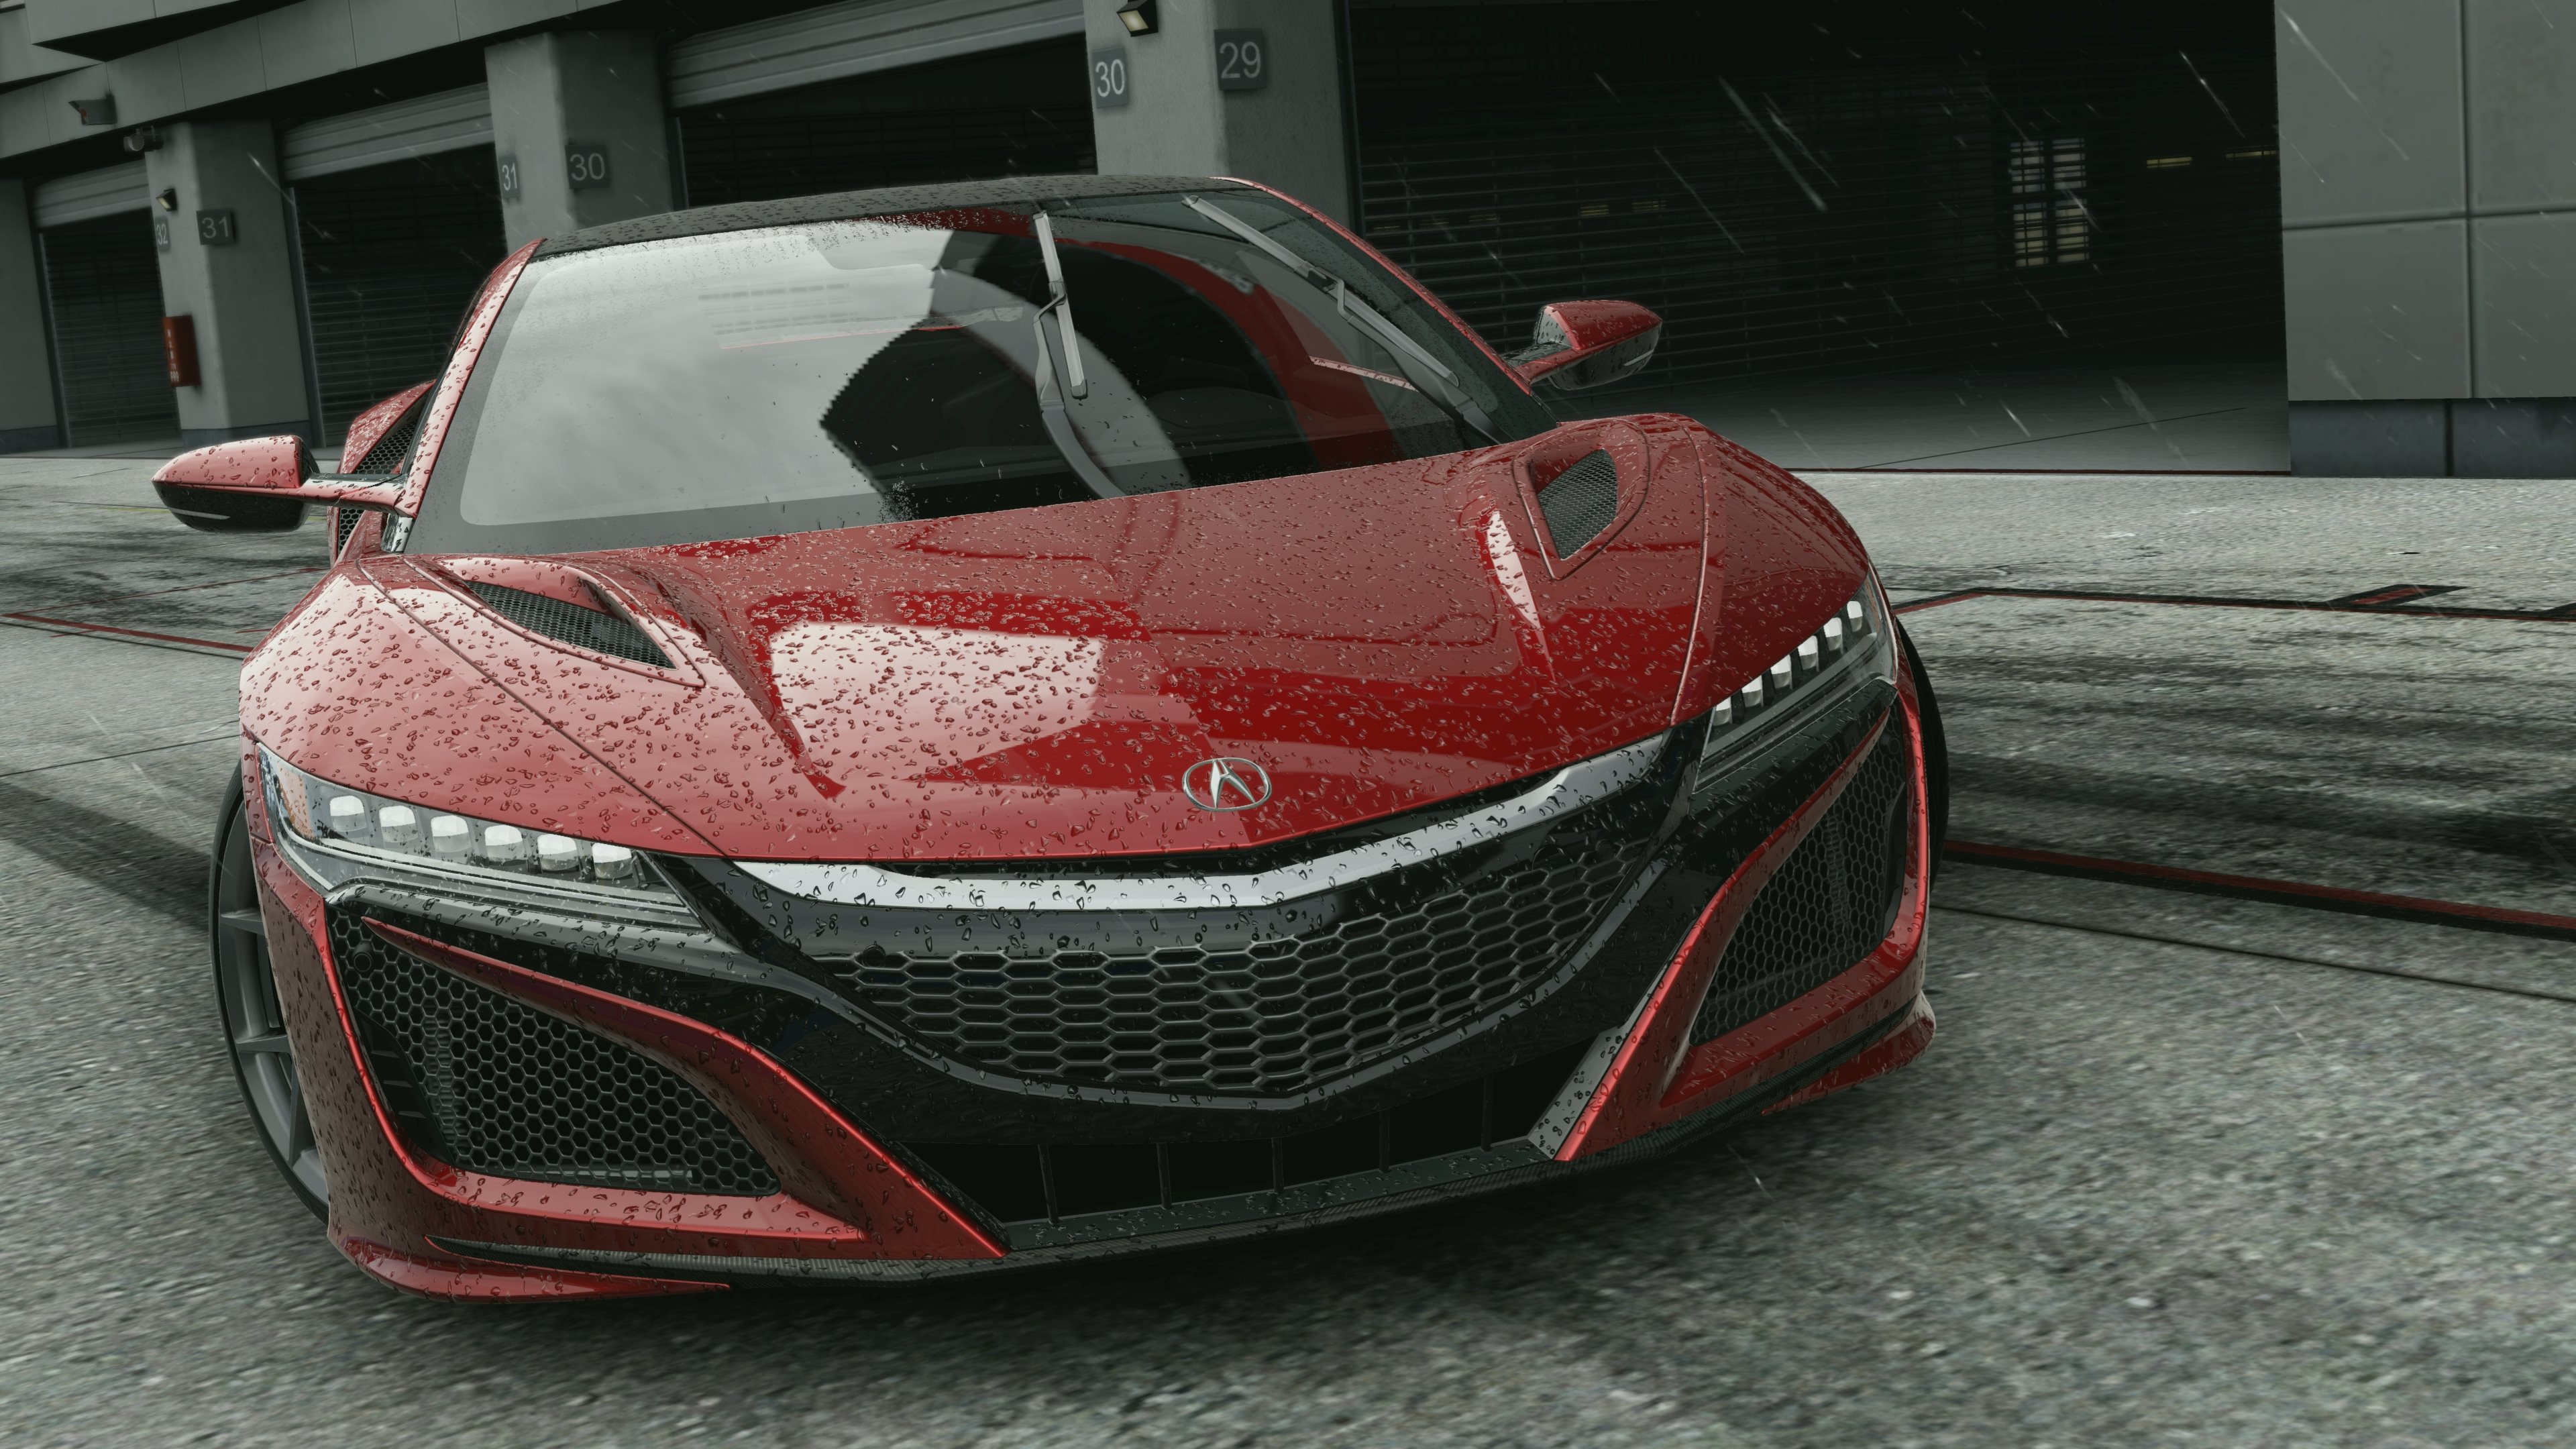 project cars 2 officially unveiled promises over 170 cars and 60 tracks even more realistic. Black Bedroom Furniture Sets. Home Design Ideas